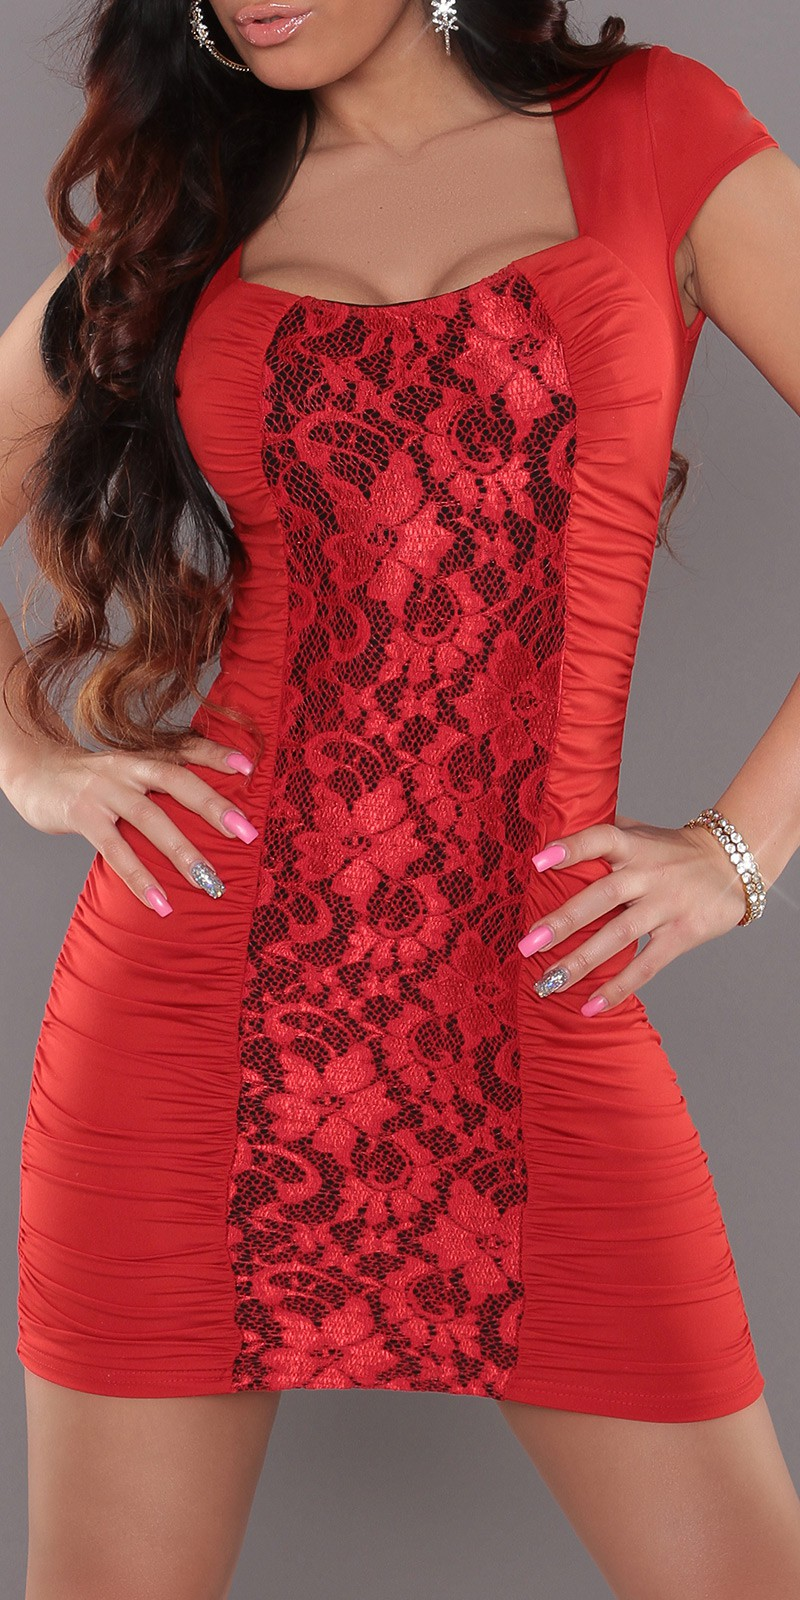 Red Square Neck Dress With Lace Insert